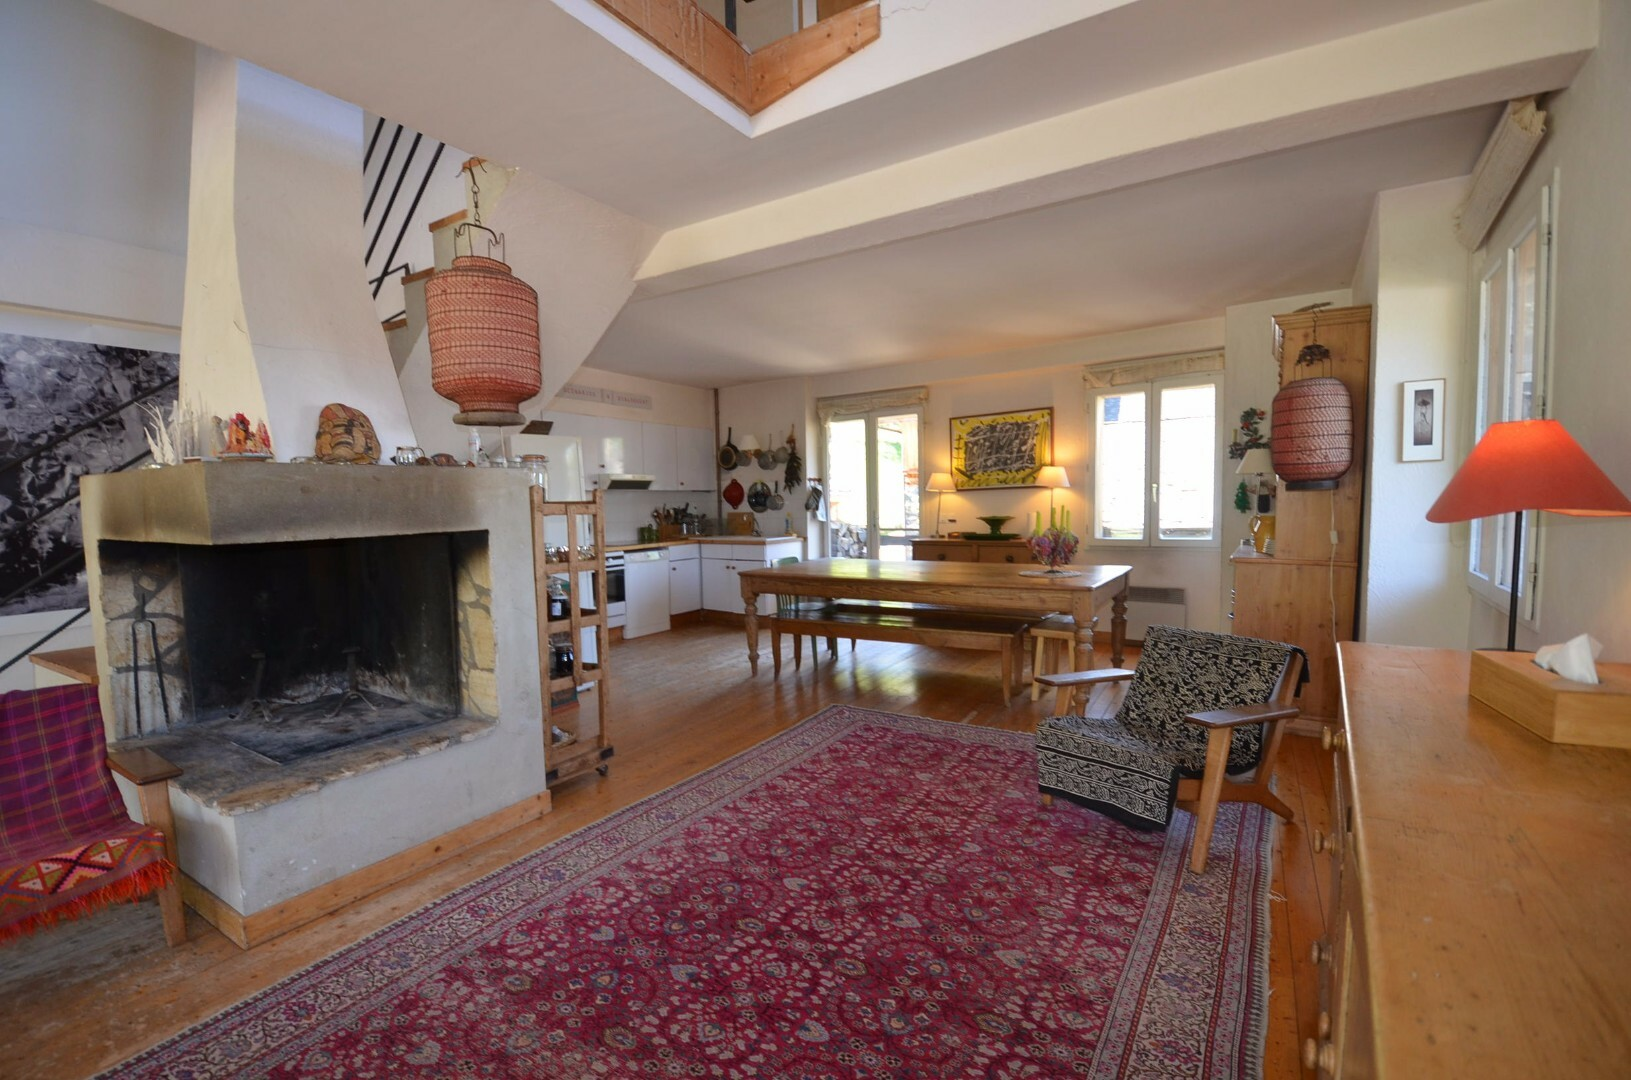 Sale House, 10 Rooms, 8 Bedrooms, Area 200m²